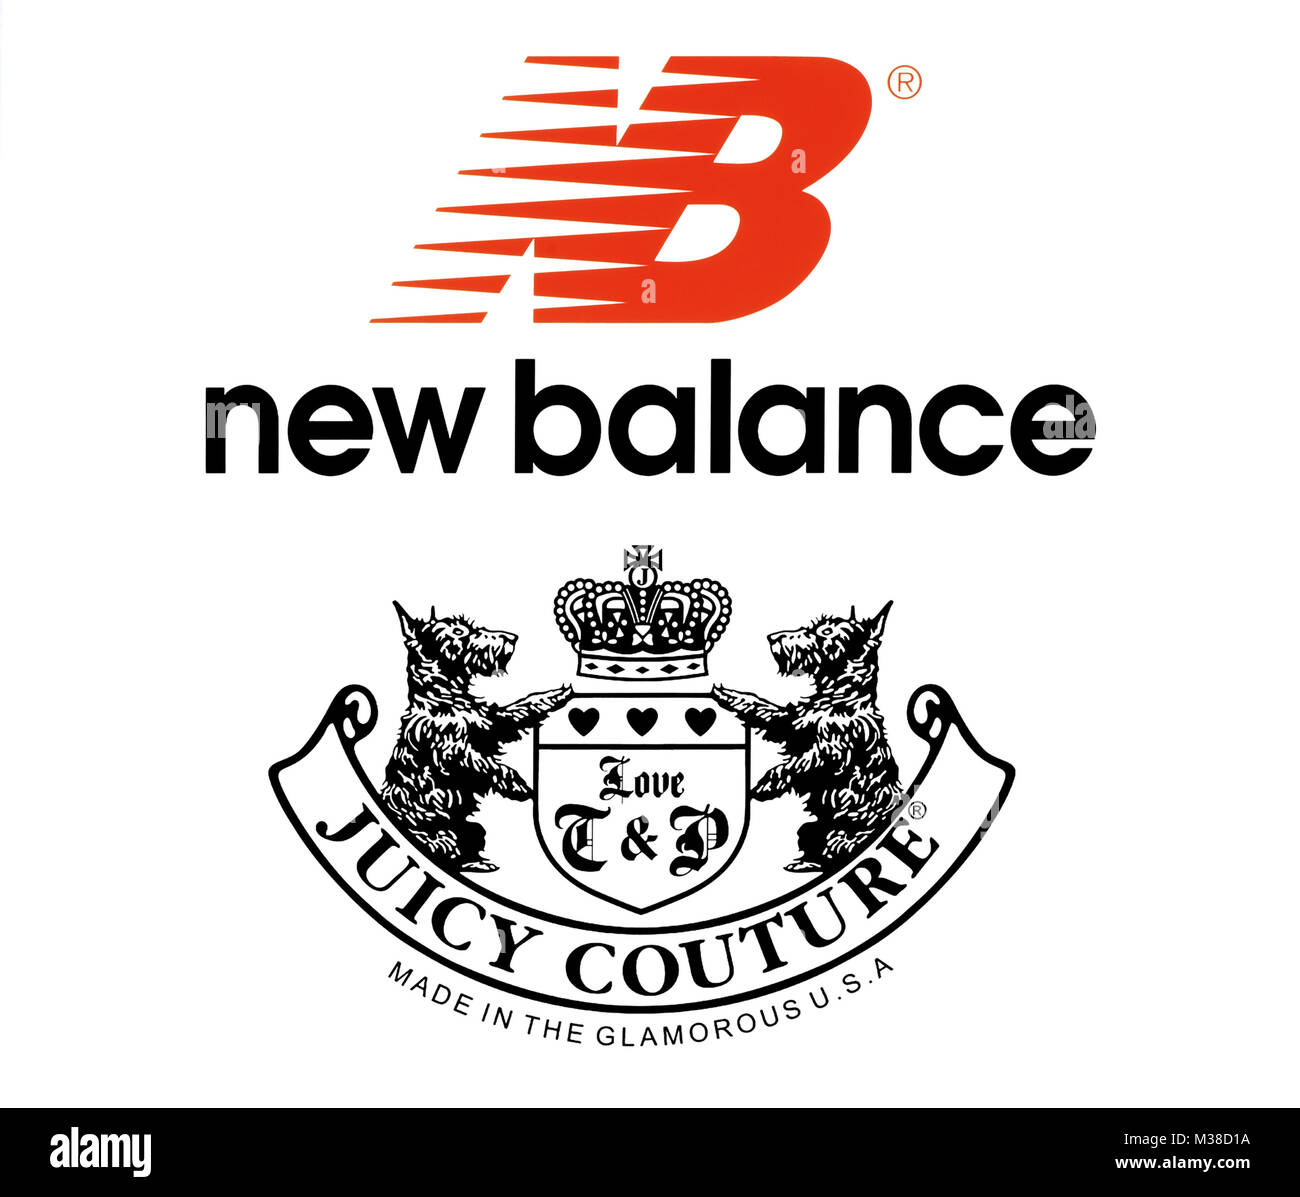 Kiev, Ukraine - October 27, 2017: Collection of popular sportswear manufactures logos printed on paper: New Balance - Stock Image